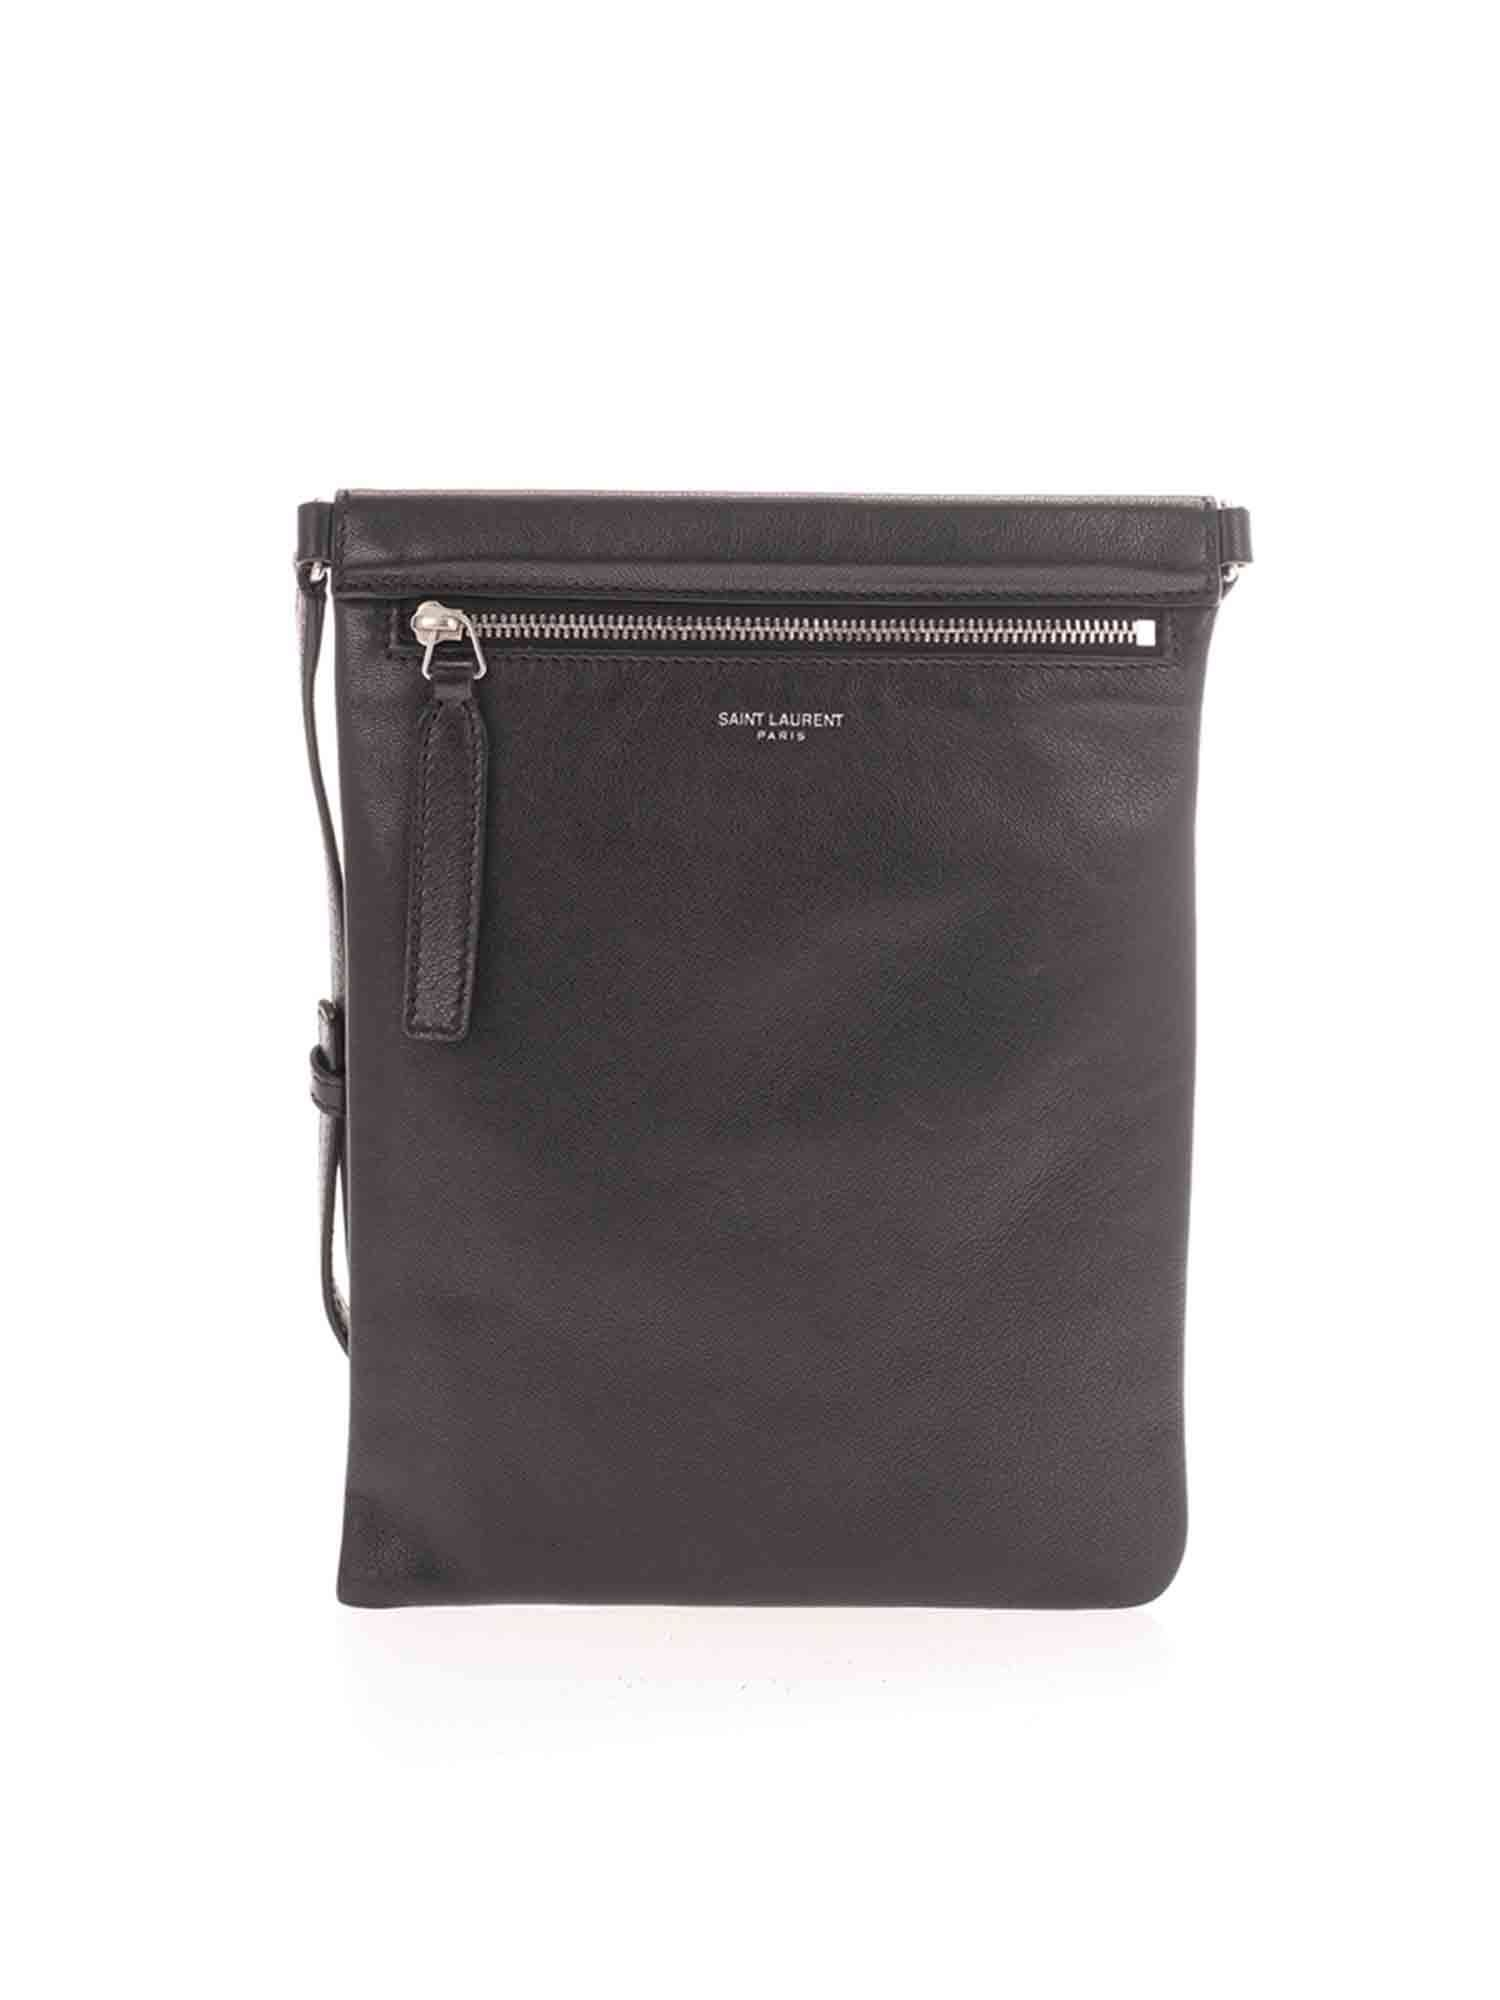 Saint Laurent CROSSBODY BAG IN BLACK